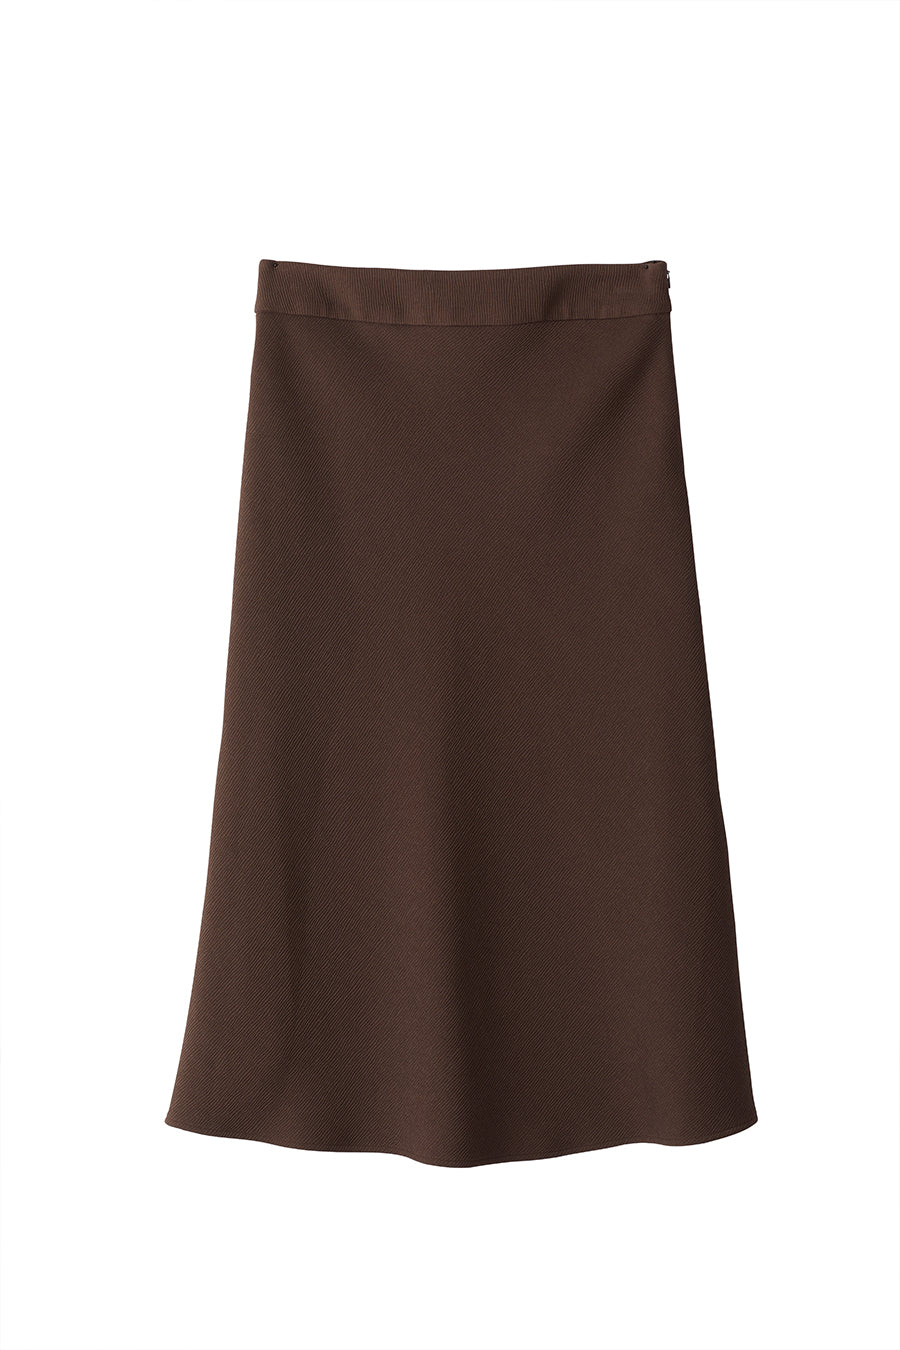 BRIDGE SKIRT - DARK BROWN